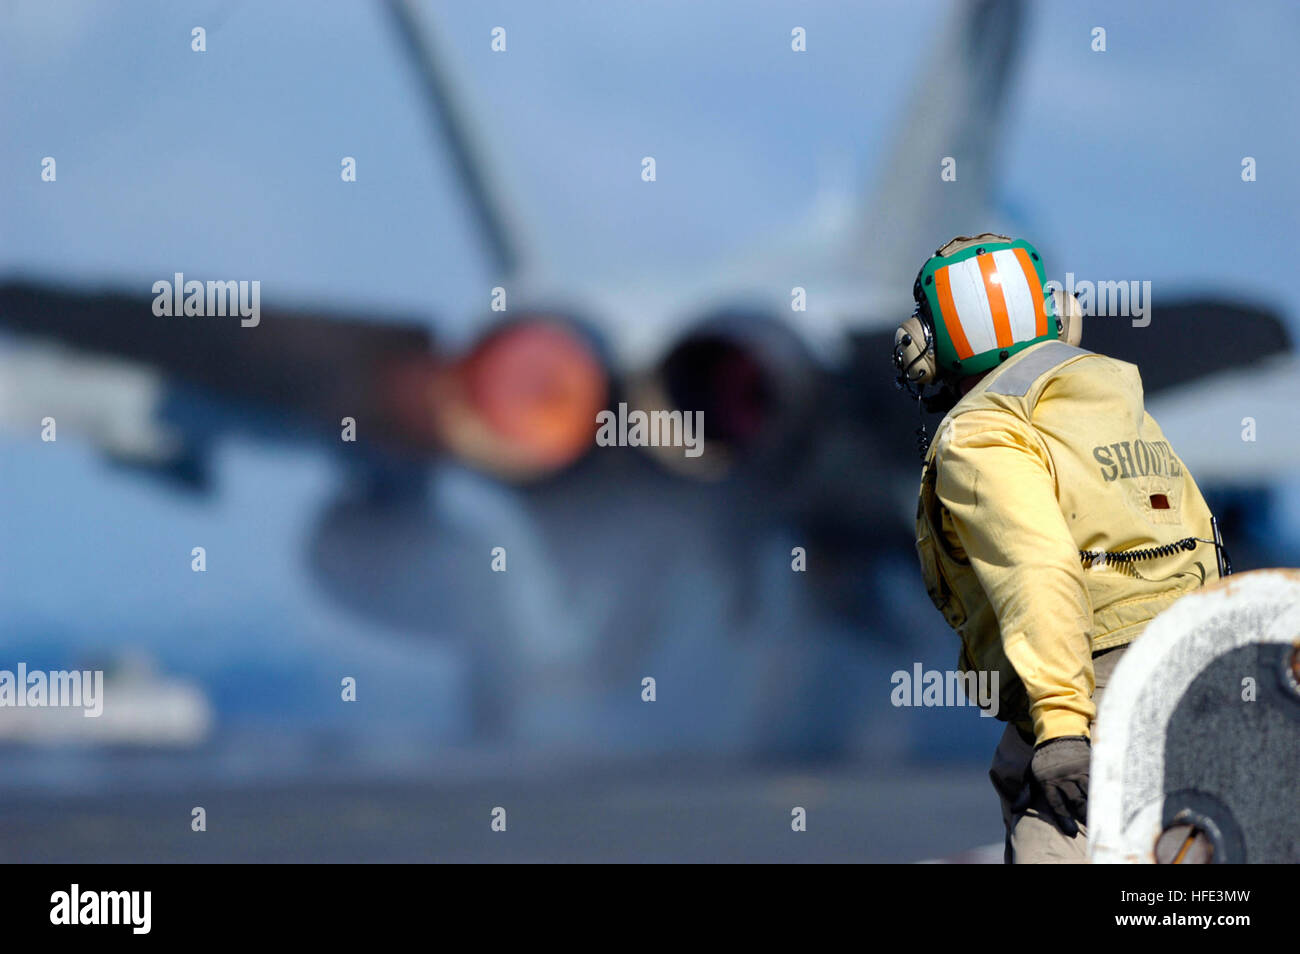 040828-N-5781F-167 Pacific Ocean (Aug. 28, 2004) - A catapult shooter launches an F/A-18C Hornet off the bow of - Stock Image